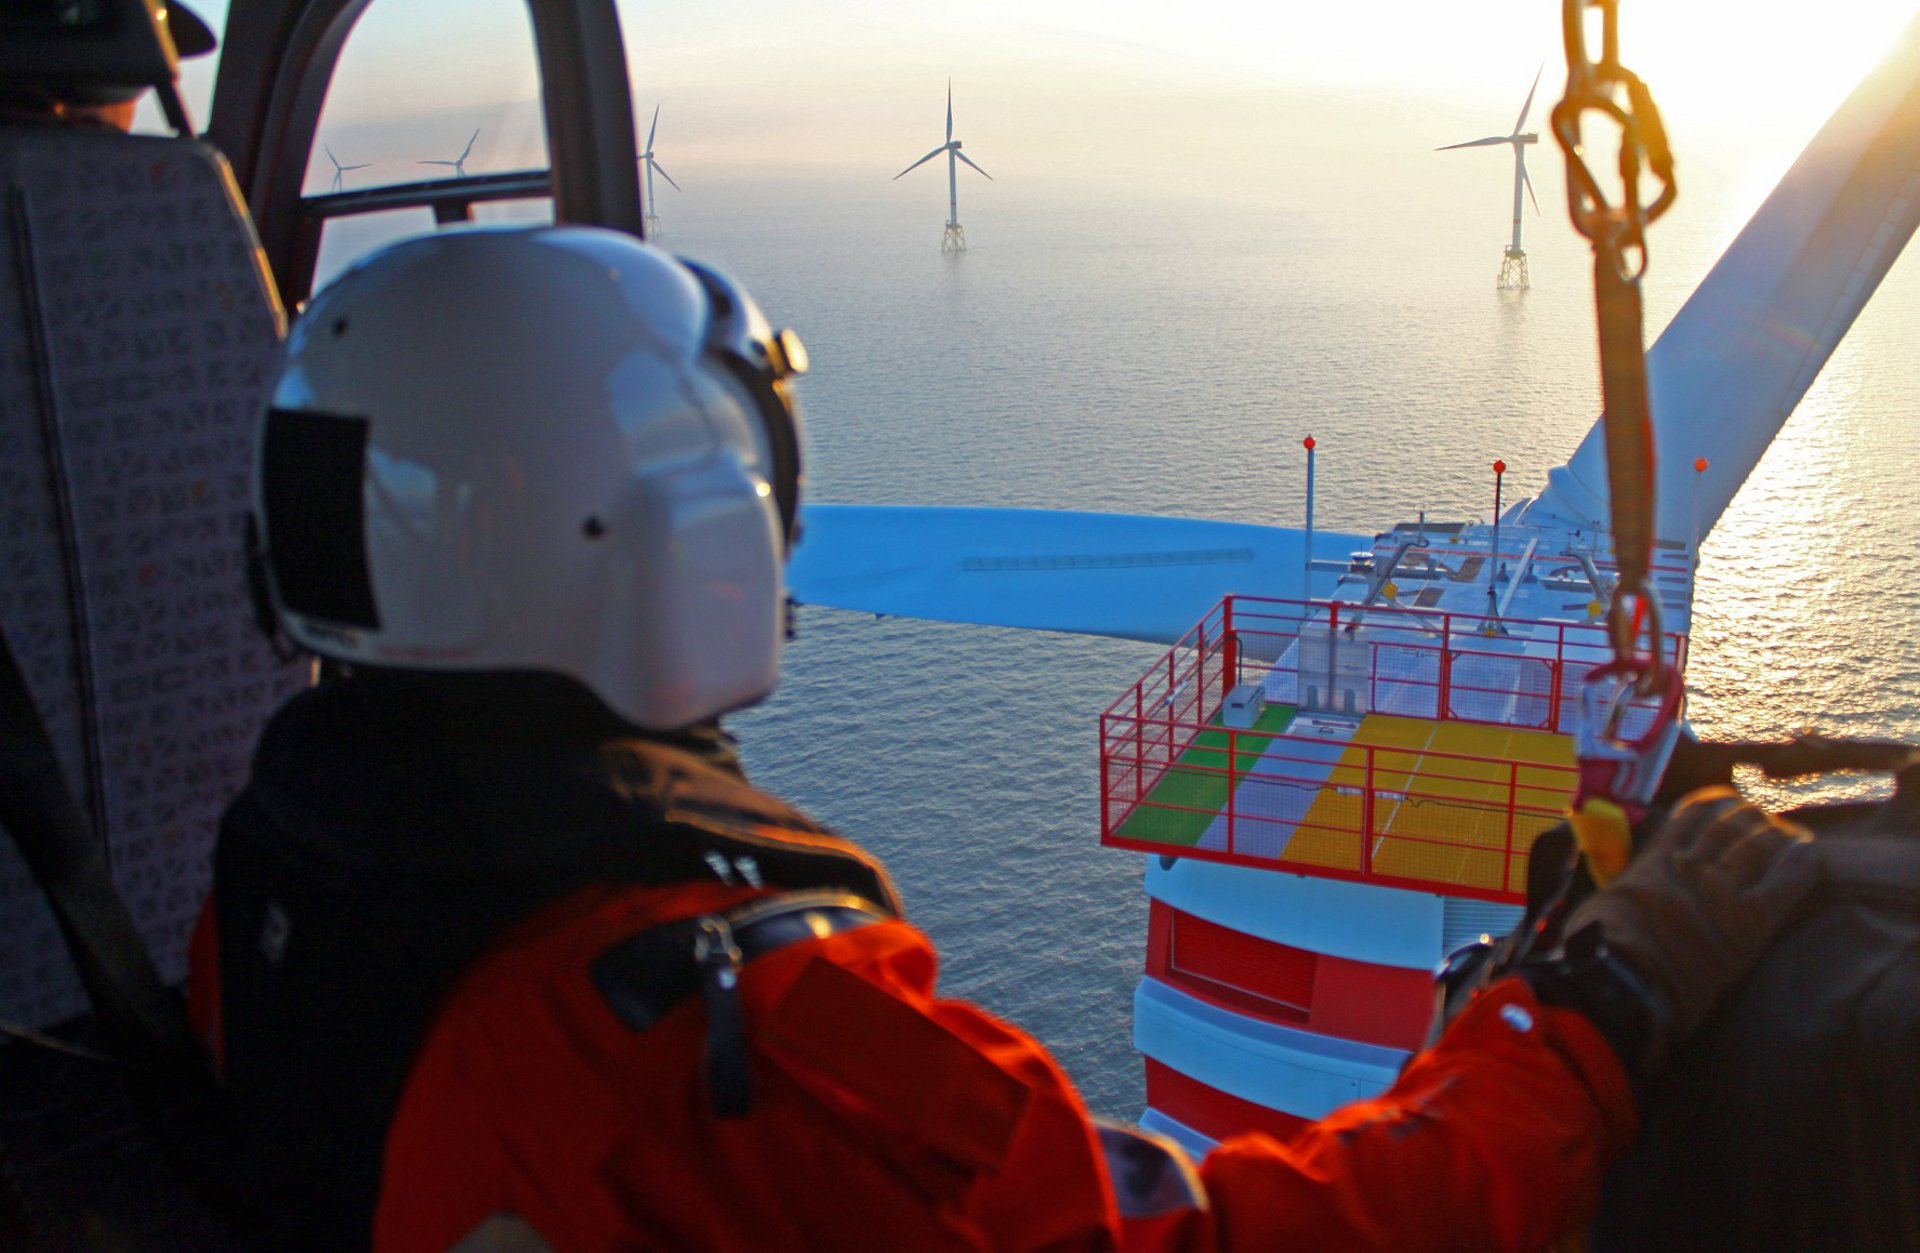 Wiking Helikopters has bases in: Mariensiel, Emden, Husum (Germany), Great Oakley (UK), Wick (UK), Beccles (UK), Visby (S), Bornholm (DK), Helsinki (FI), Den Helder, Eemshaven (NL)